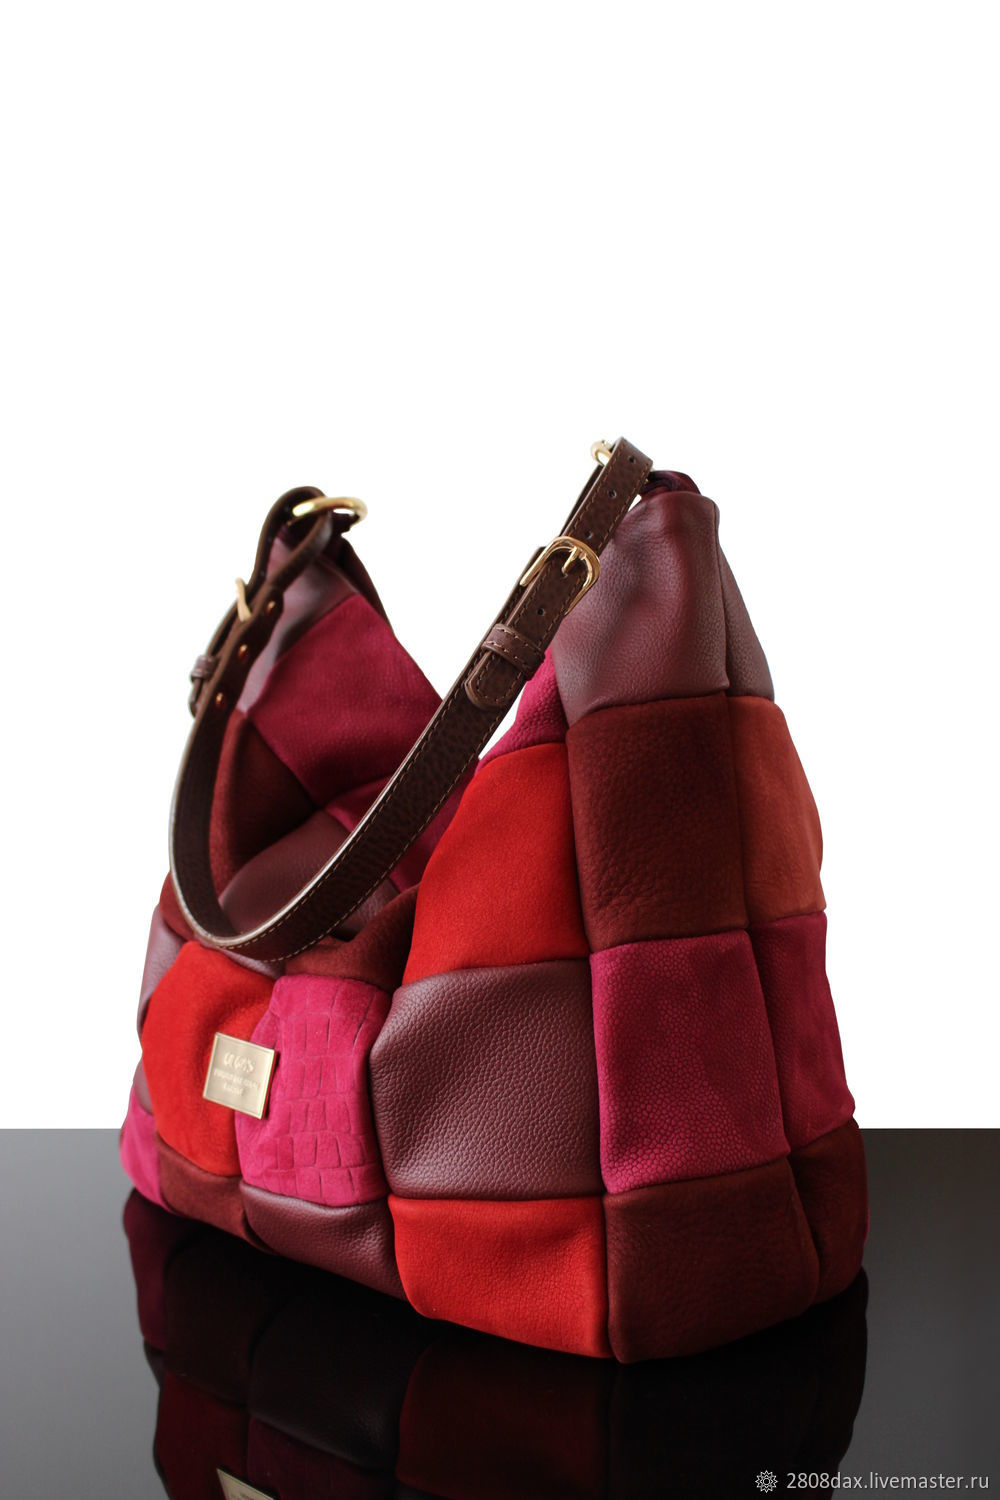 The bag of berries, a bag made of genuine leather and suede Patchwork, Sacks, Bordeaux,  Фото №1